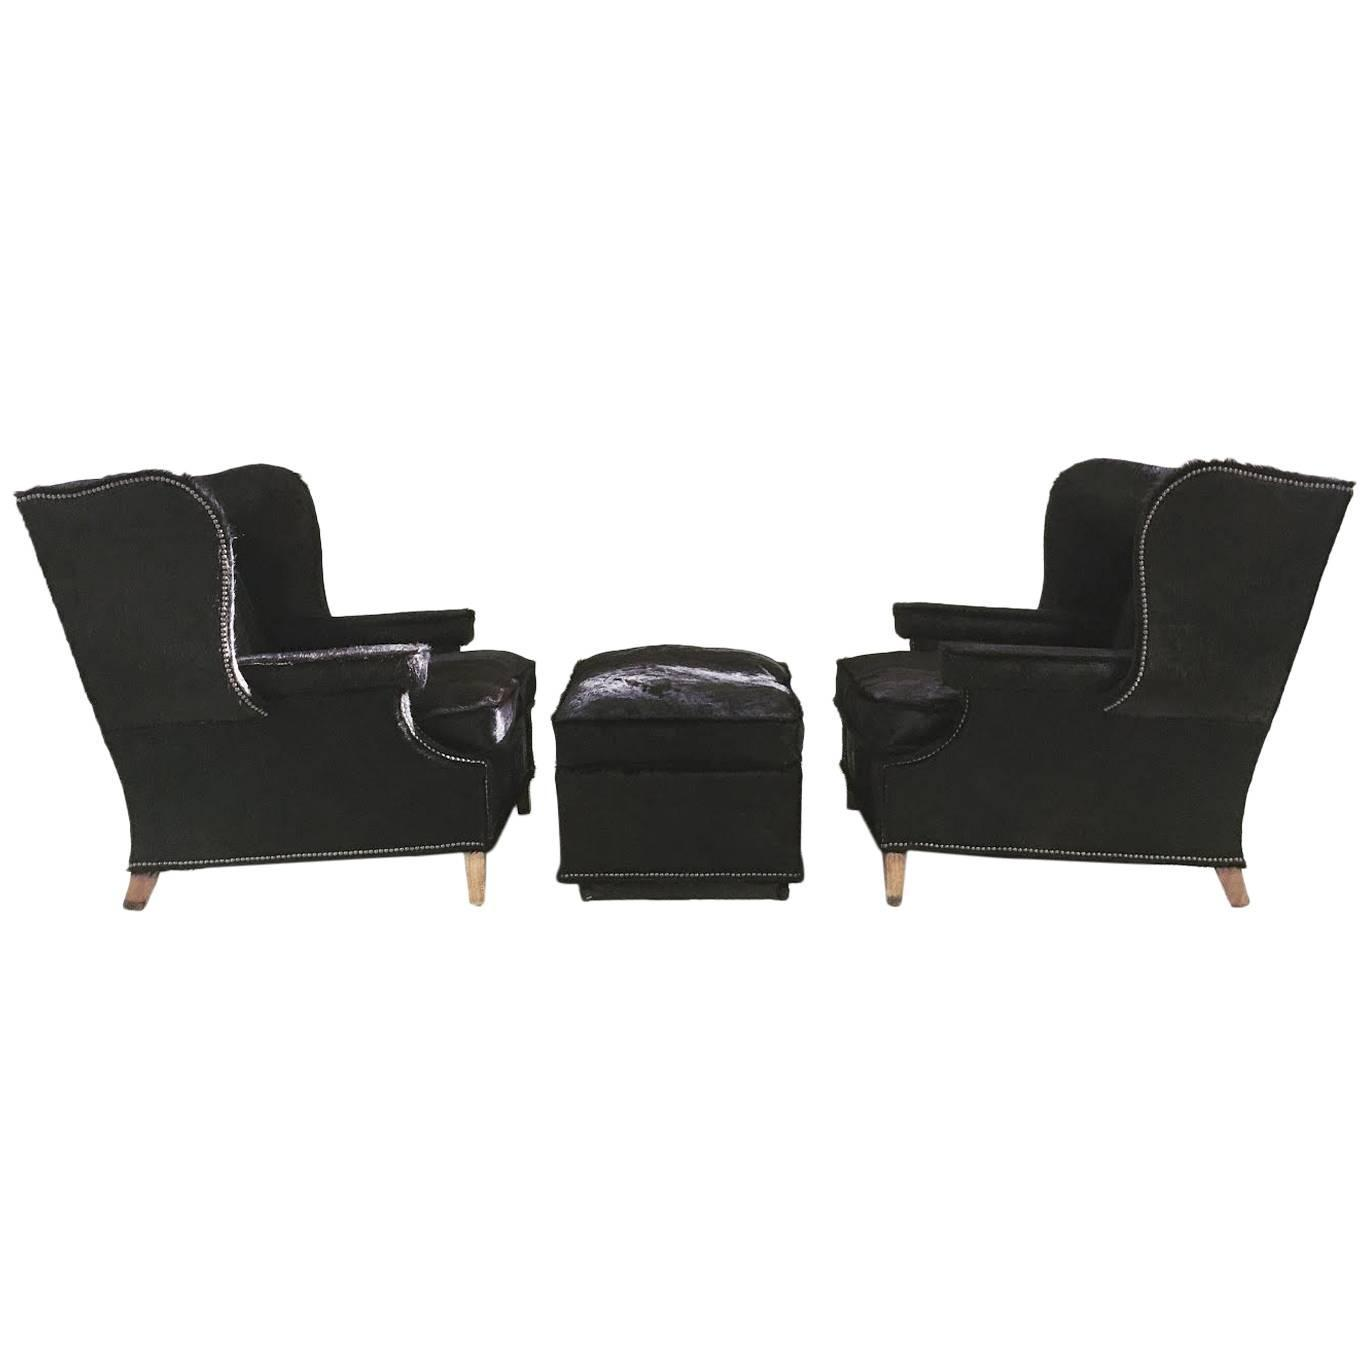 black and white cowhide chair folding racks vintage wingback chairs in natural brazilian